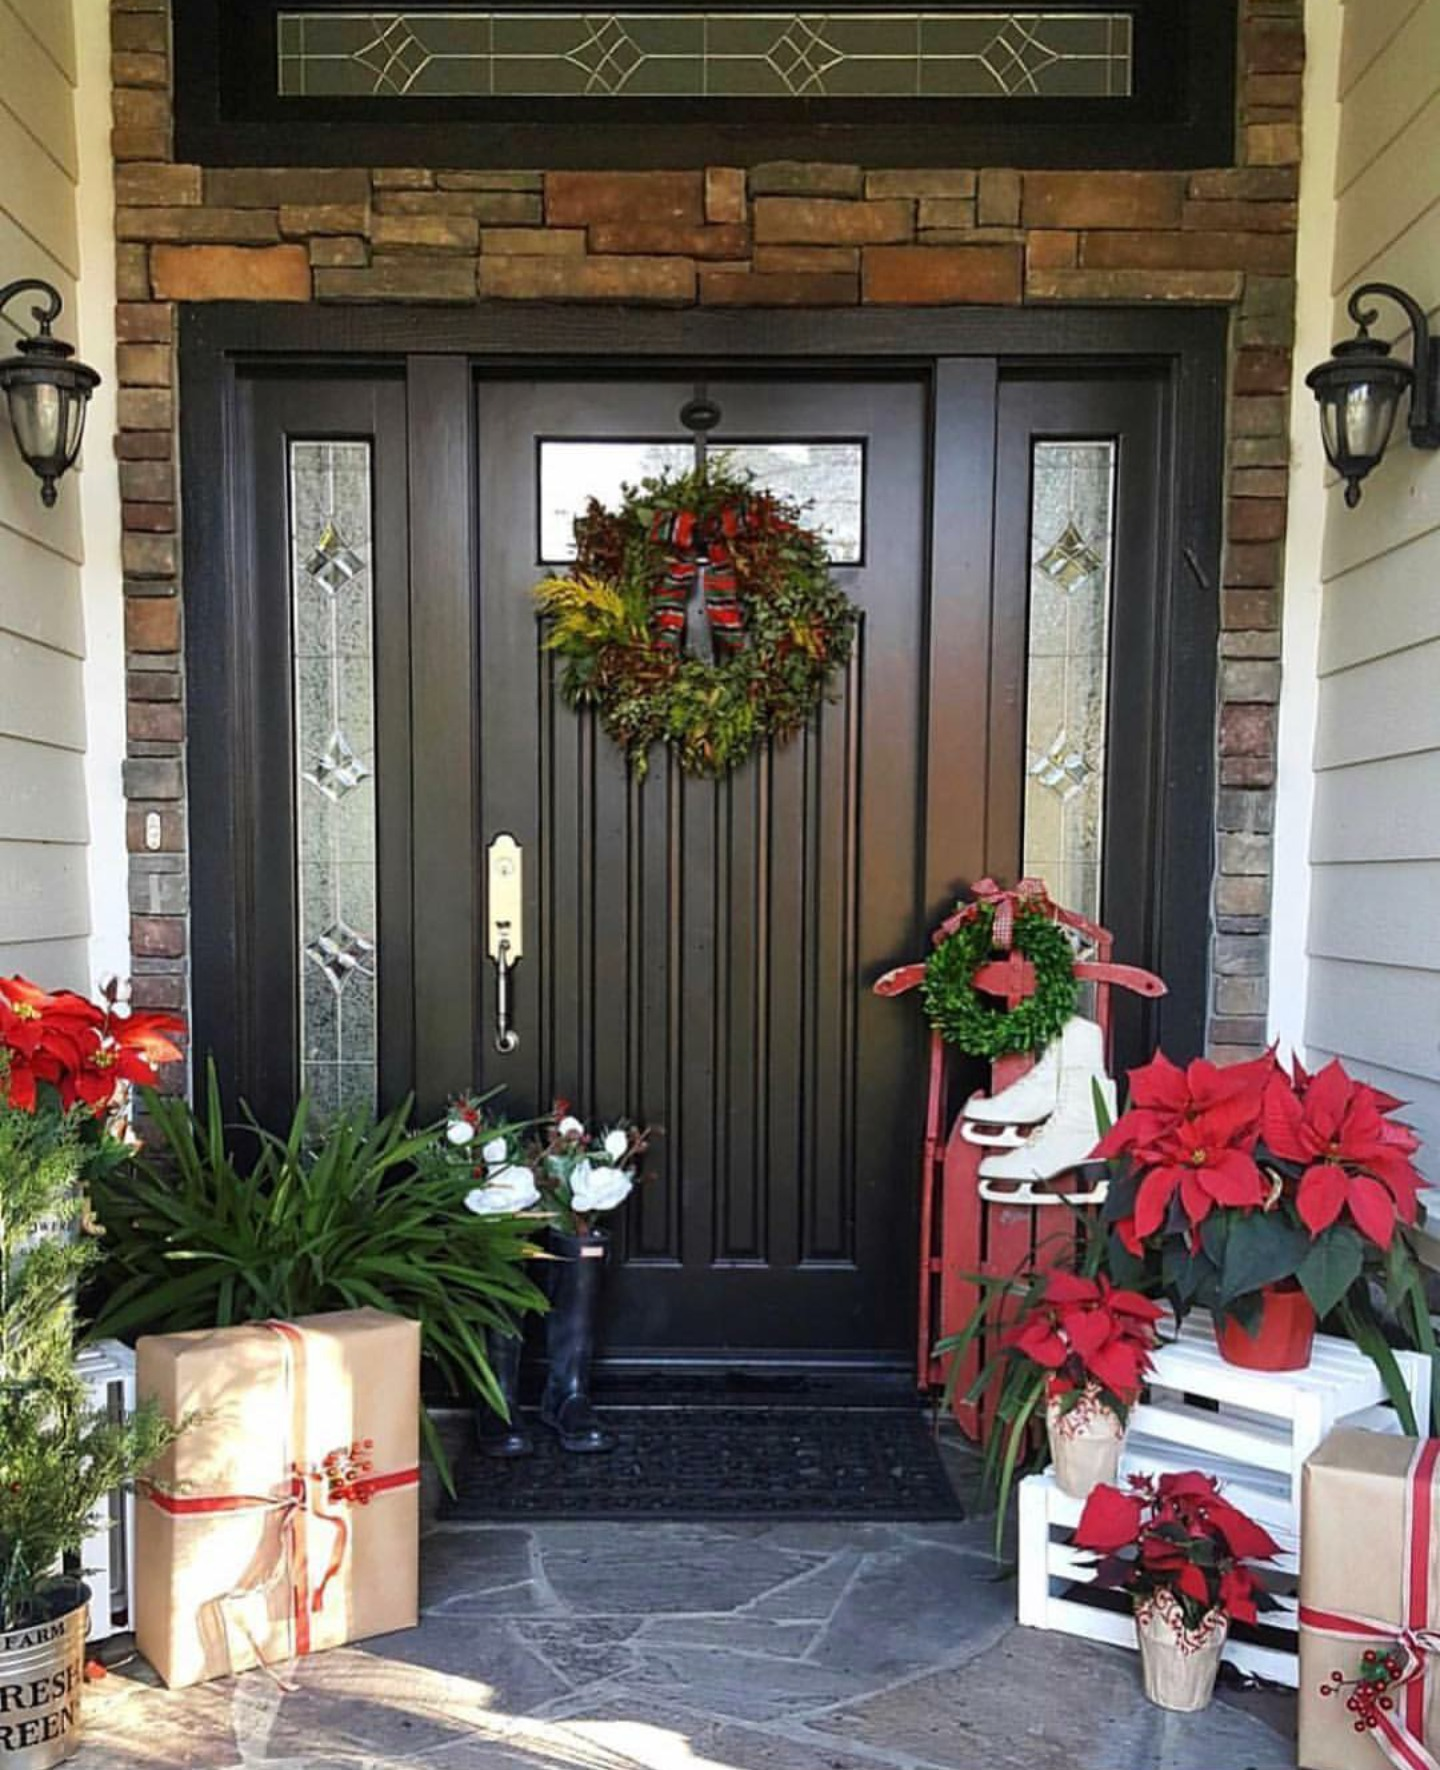 There is no shortage of major inspiration right herefor those amazing Christmas Front Porches!